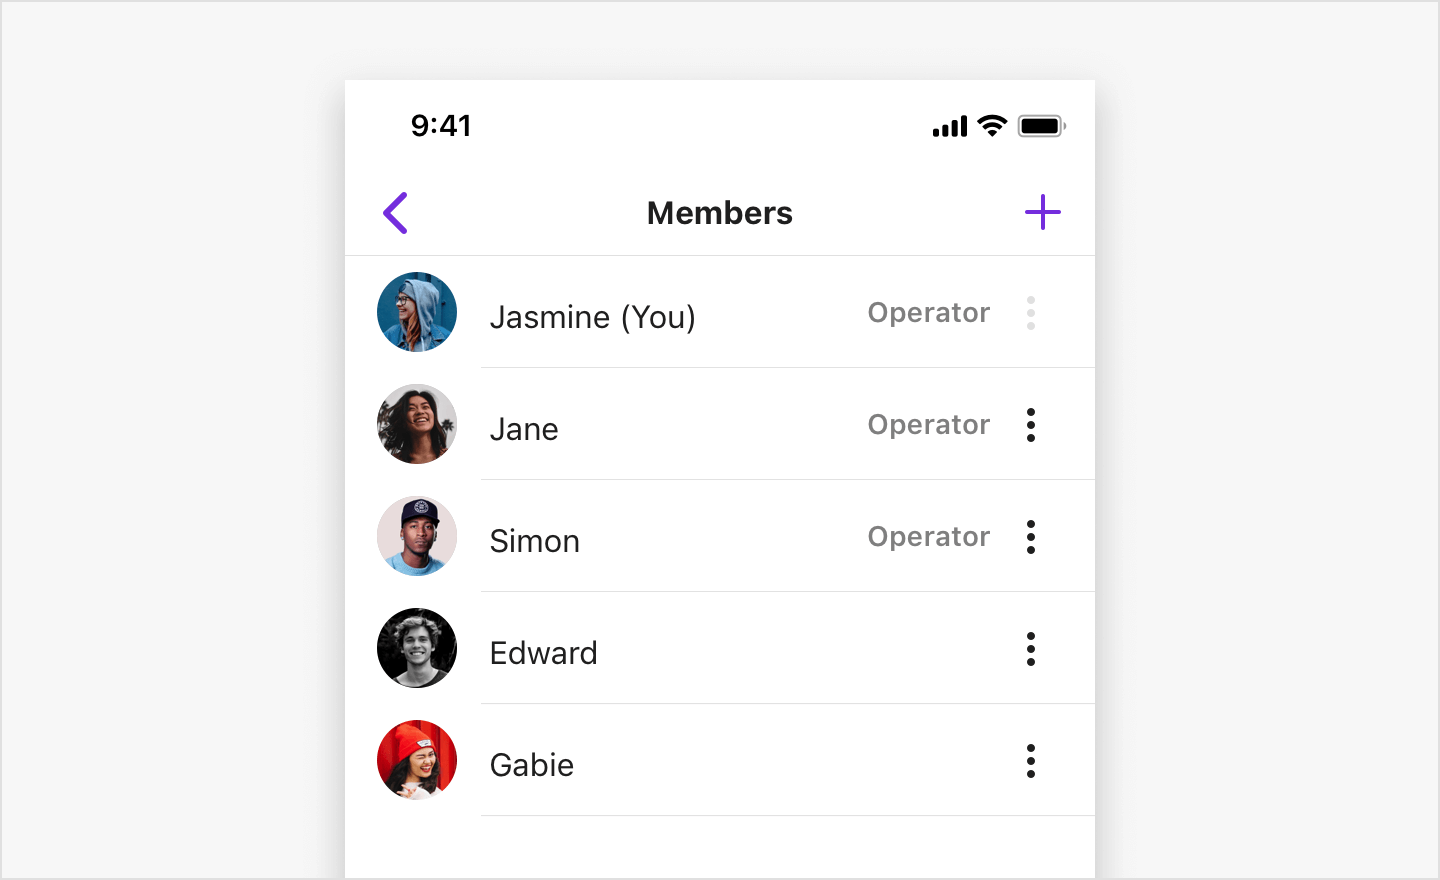 Image|SBUMemberListViewController listing the operators and normal members of a group channel in view.